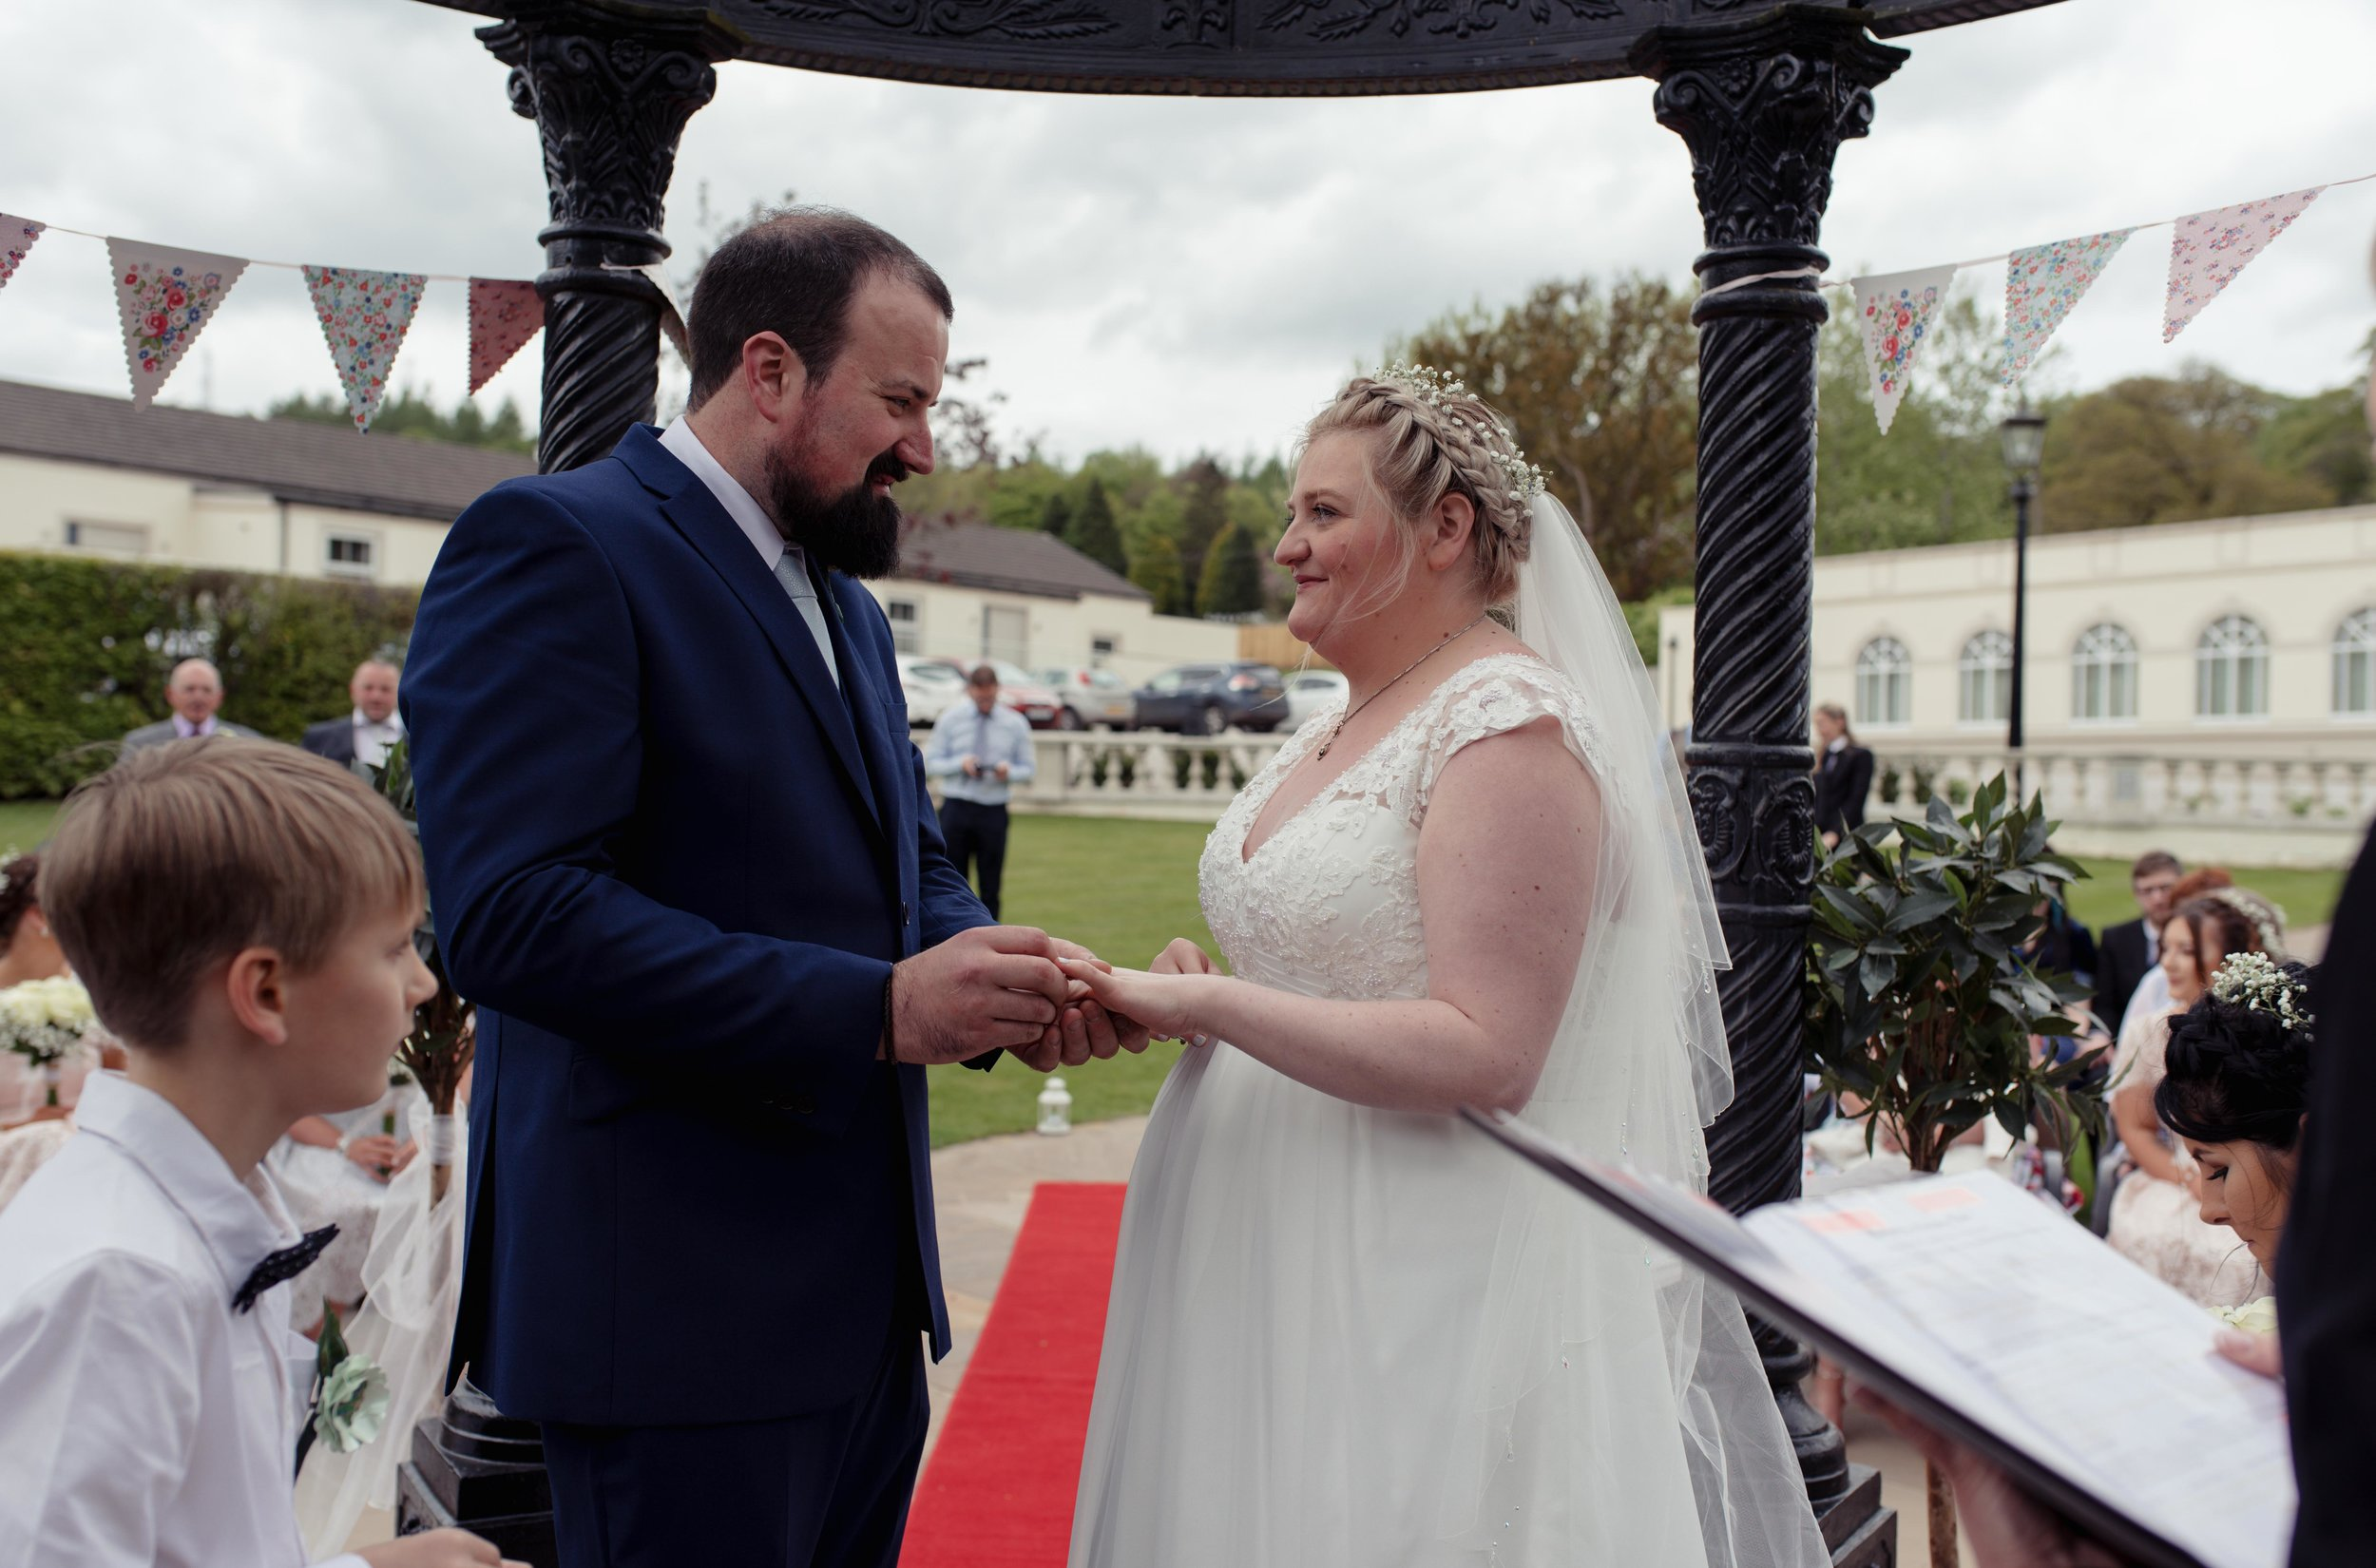 The bride and groom exchange vows in their Cumbria wedding